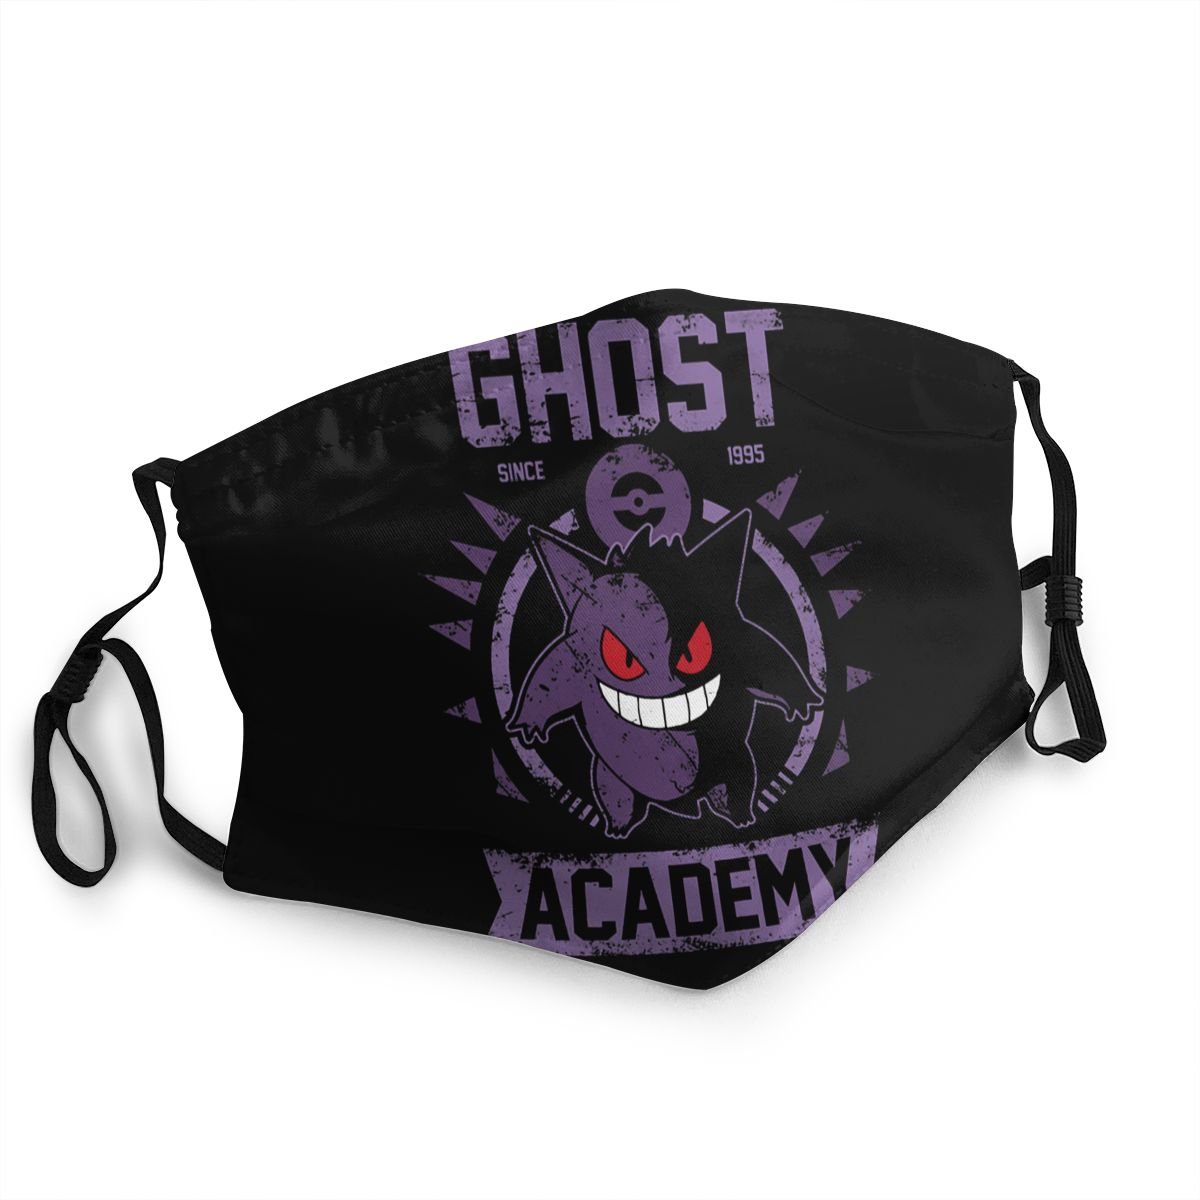 Ghost Academy Reusable Mouth Face Mask Gengar Kaiju Pokemon Anti Haze Dust Mask Protection Cover Respirator Mouth Muffle